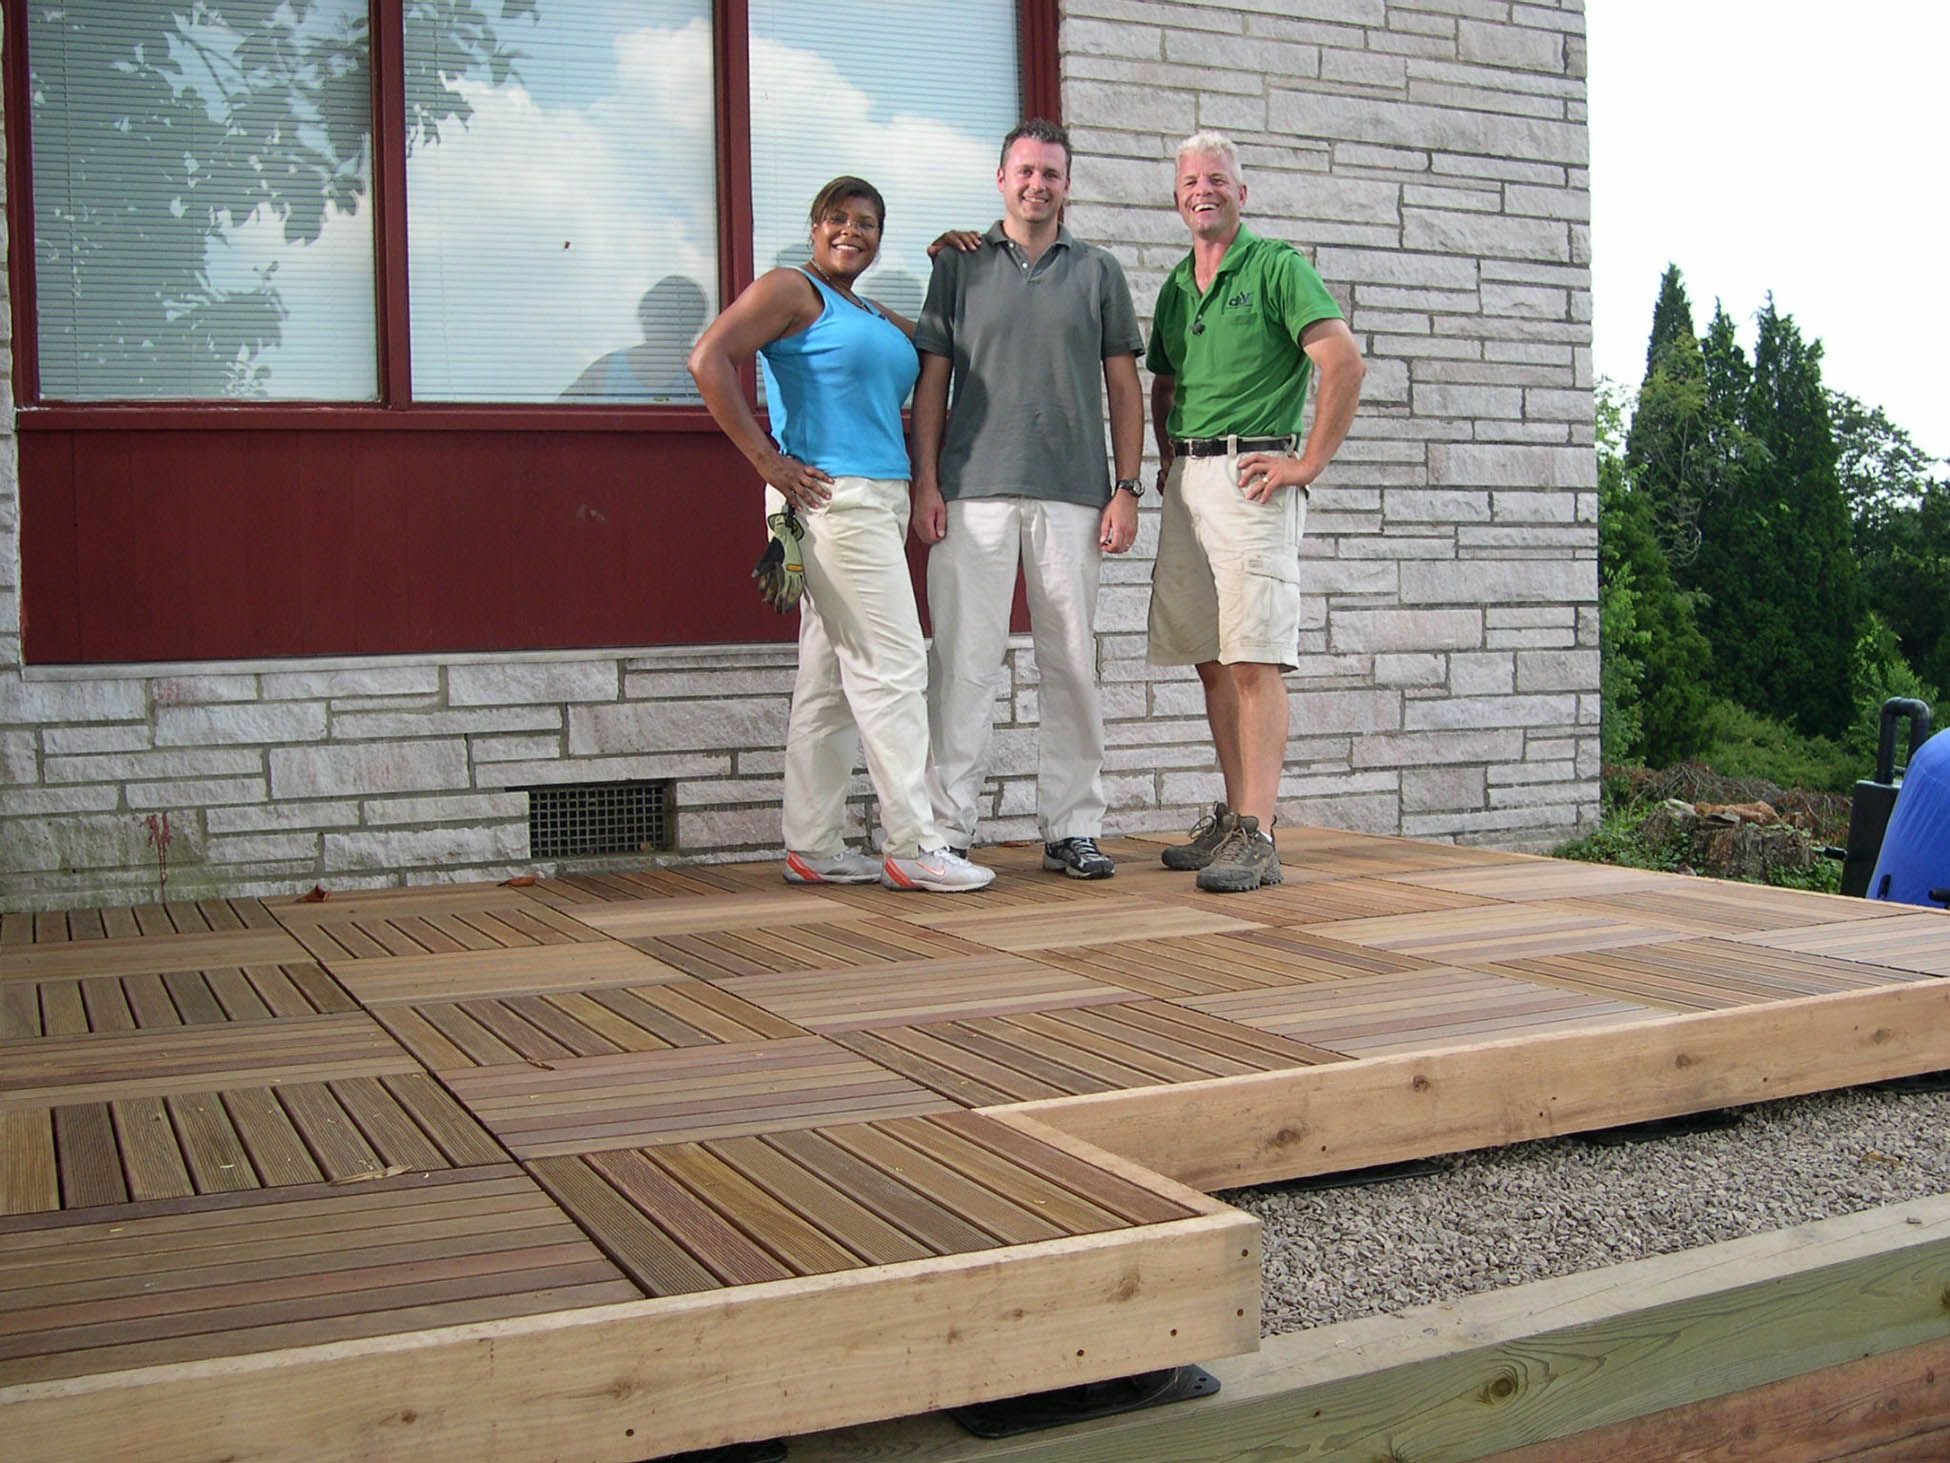 Diy Network Patio Deck Supports Pedestal System Roofdeck Ideas intended for proportions 1950 X 1463